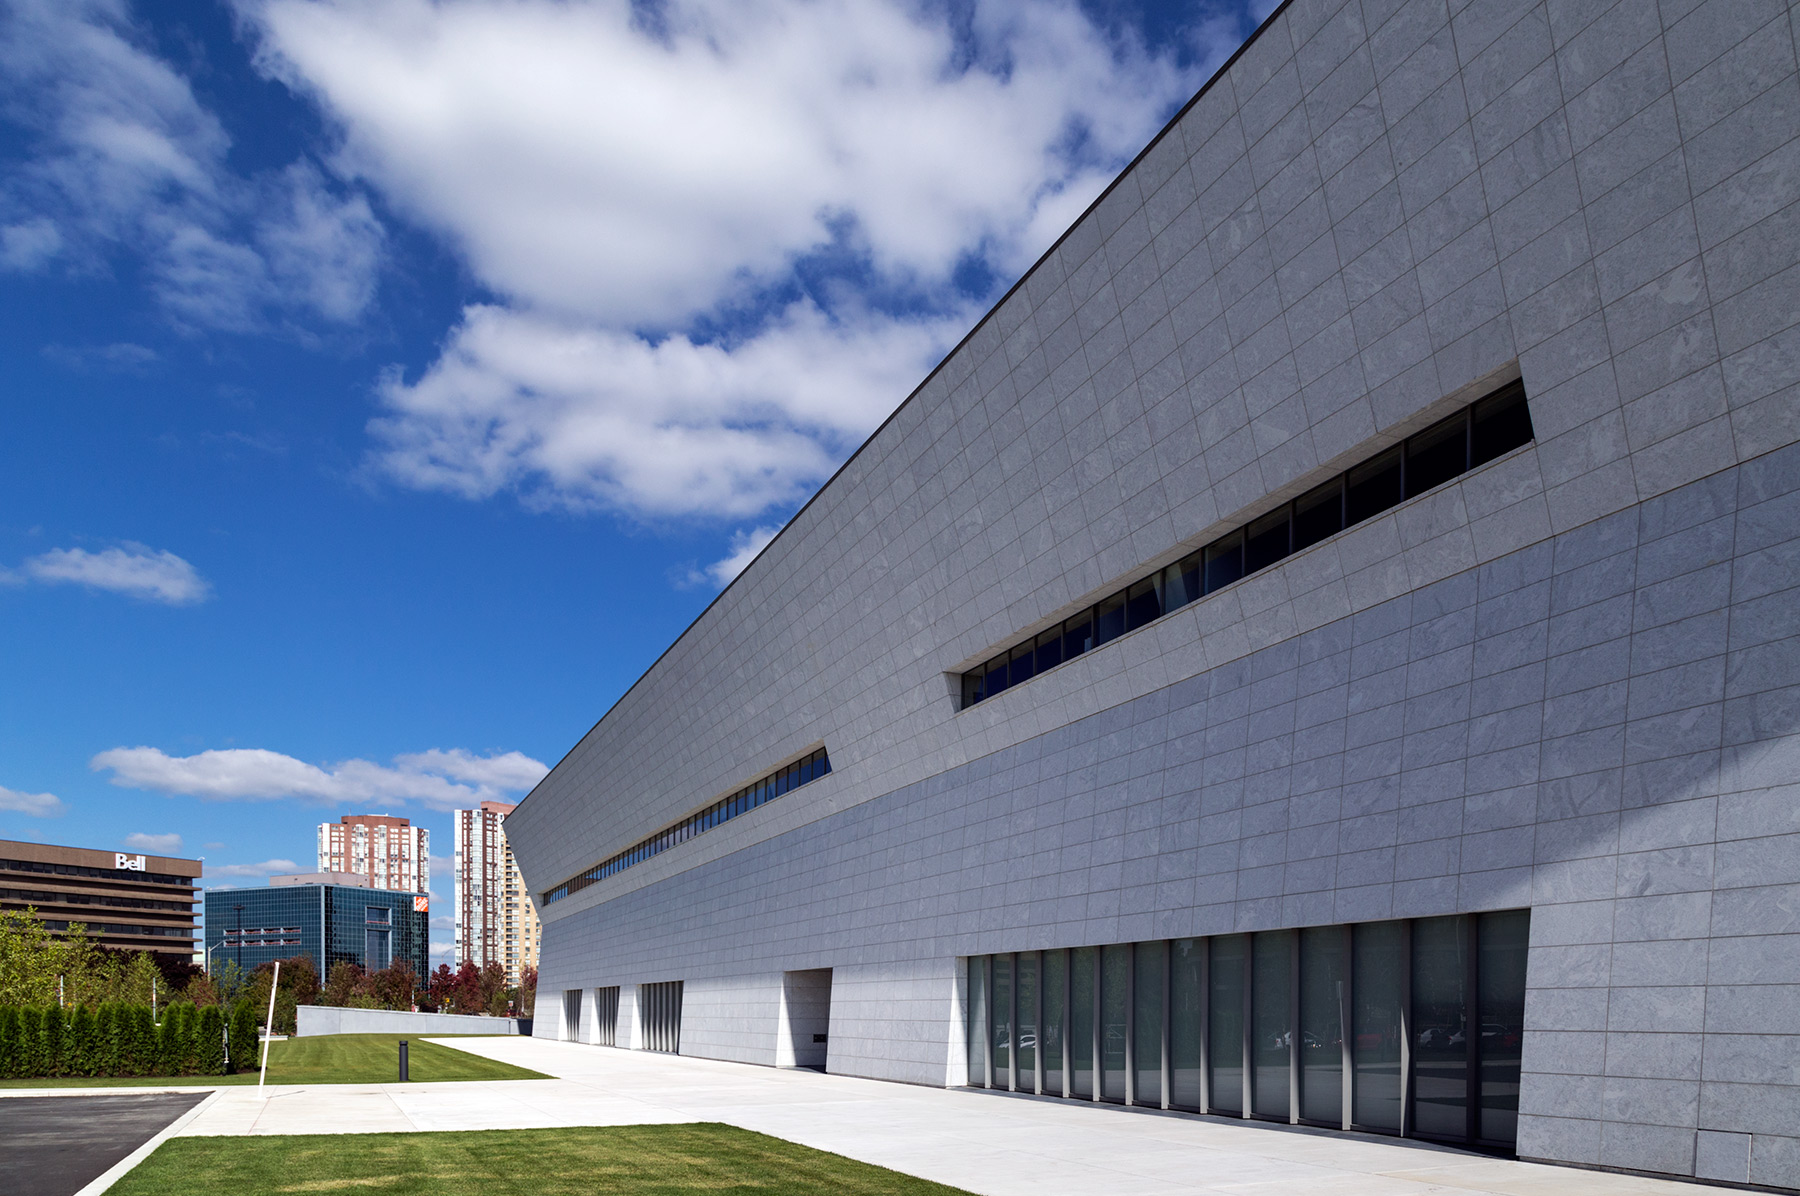 20150507. Don't forget the stunning Aga Khan Museum at Doors O